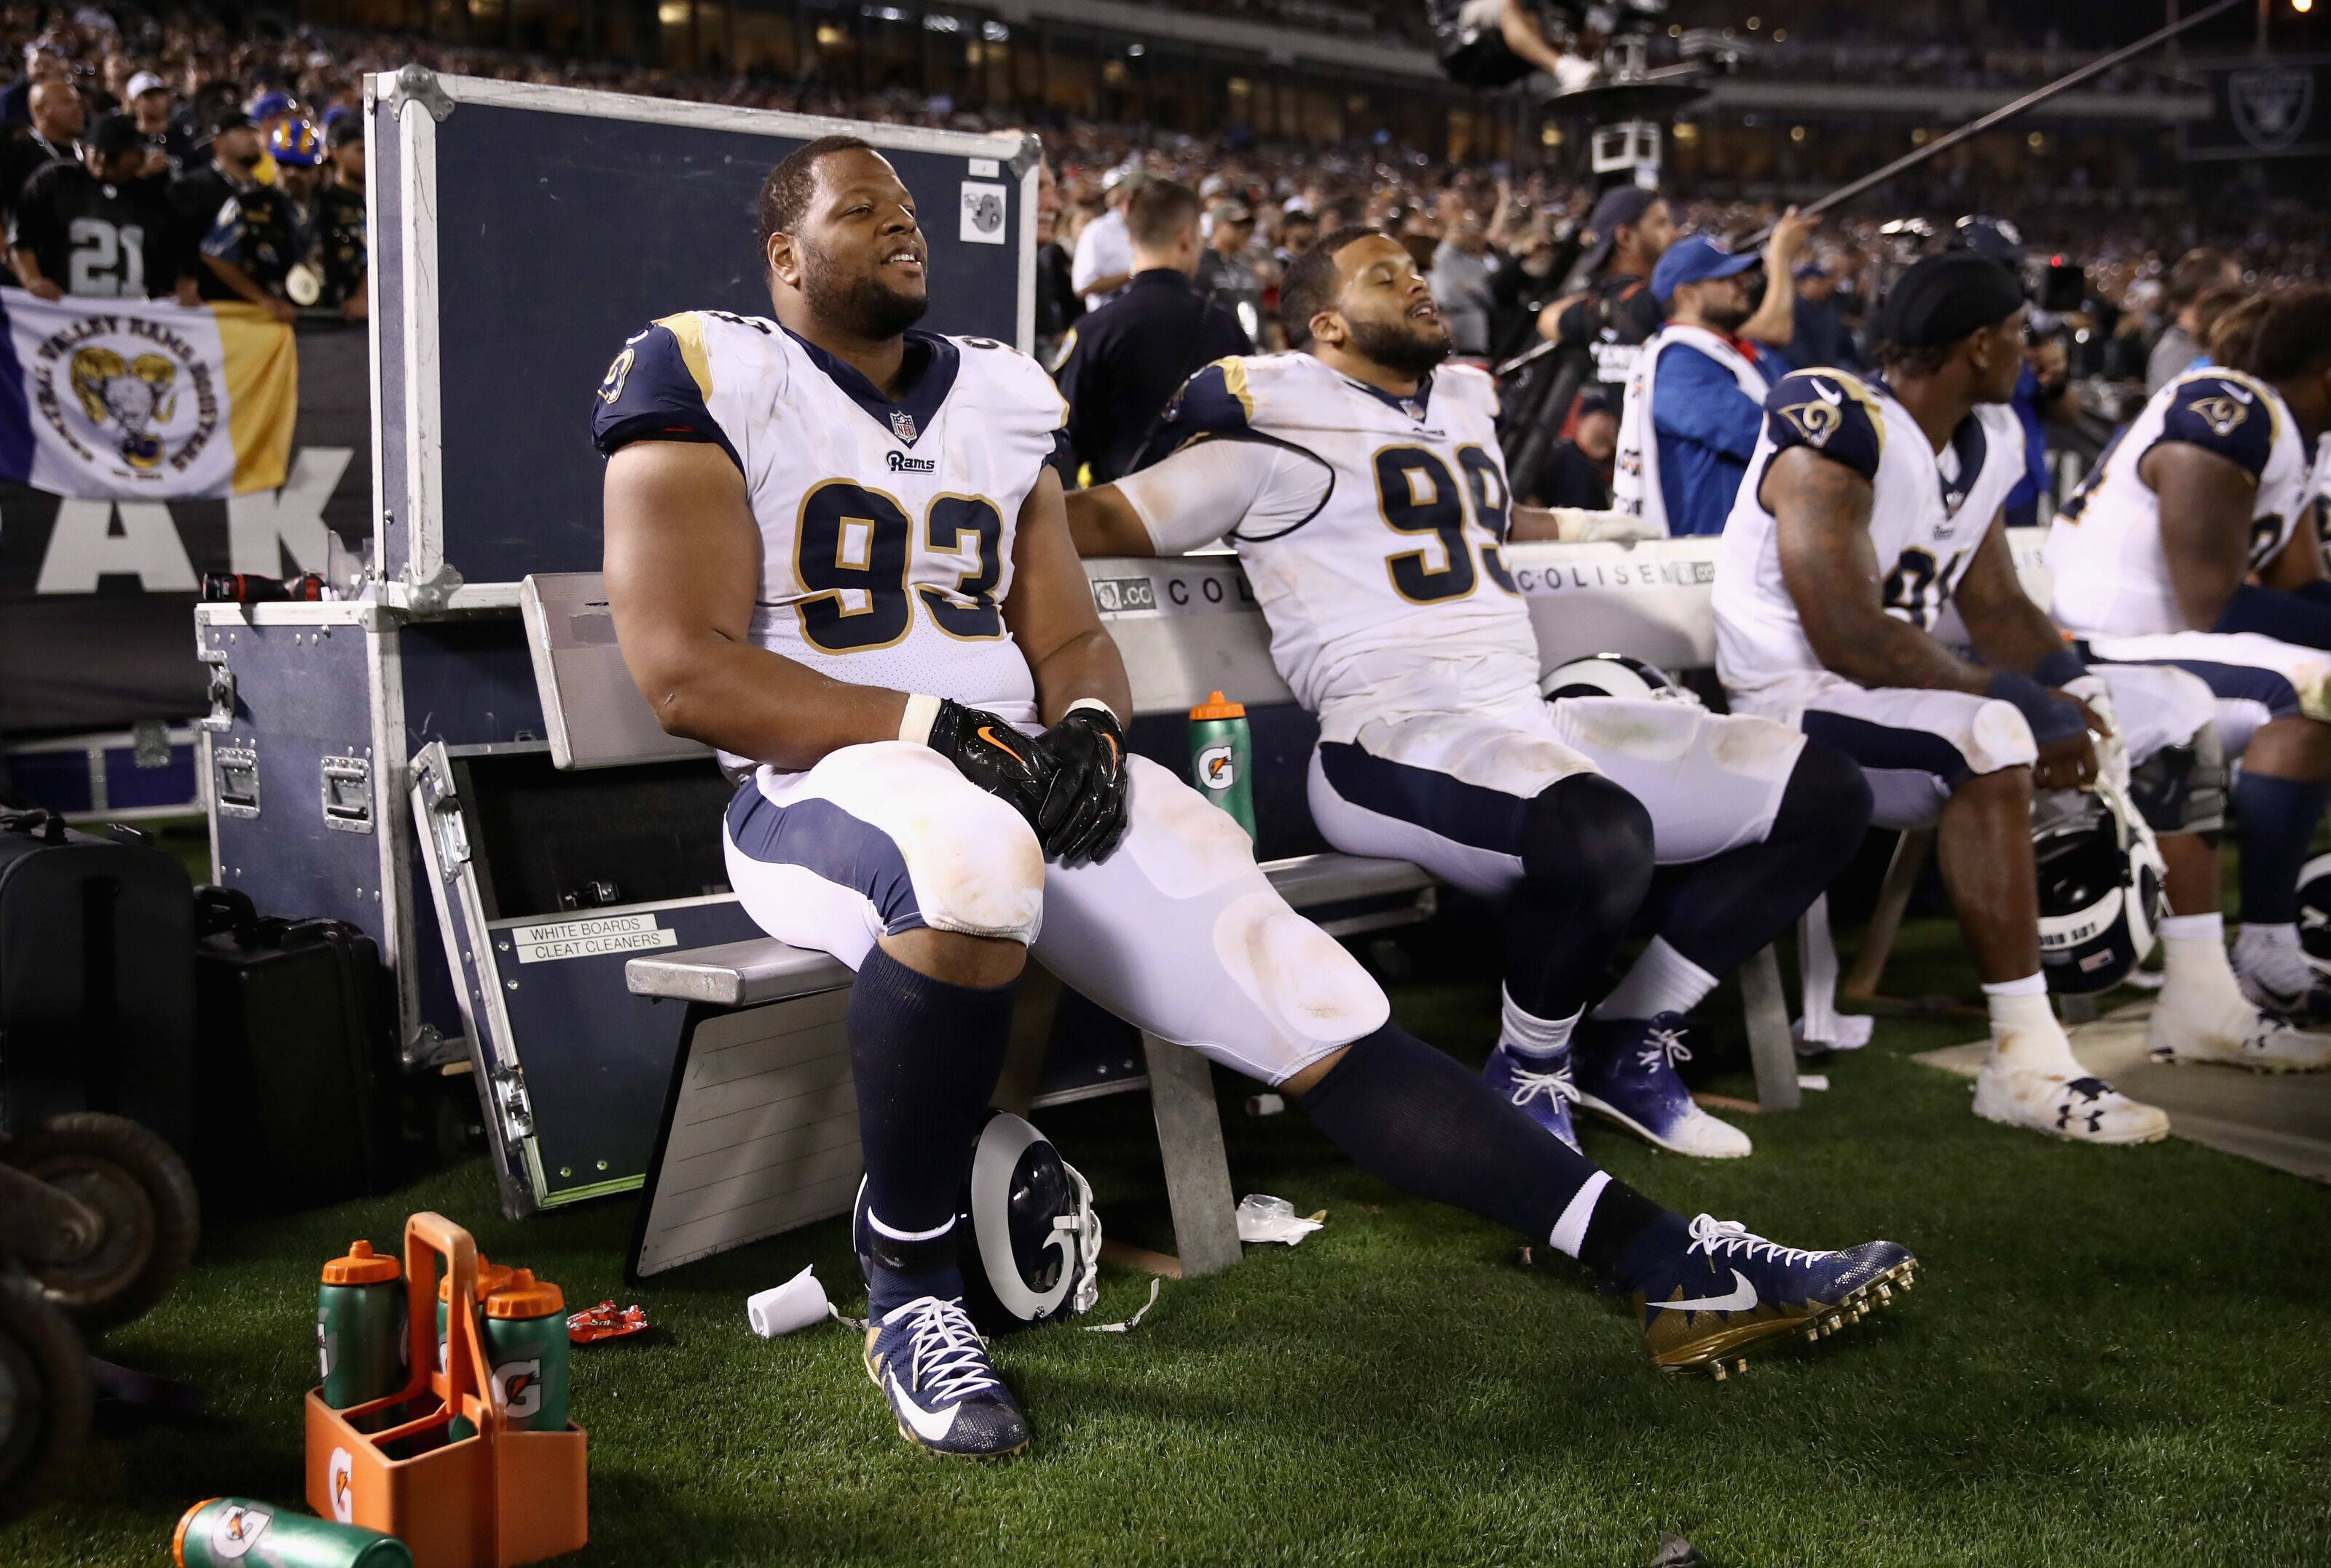 separation shoes e13dc 0720d Los Angeles Rams: Aaron Donald will be fine without ...